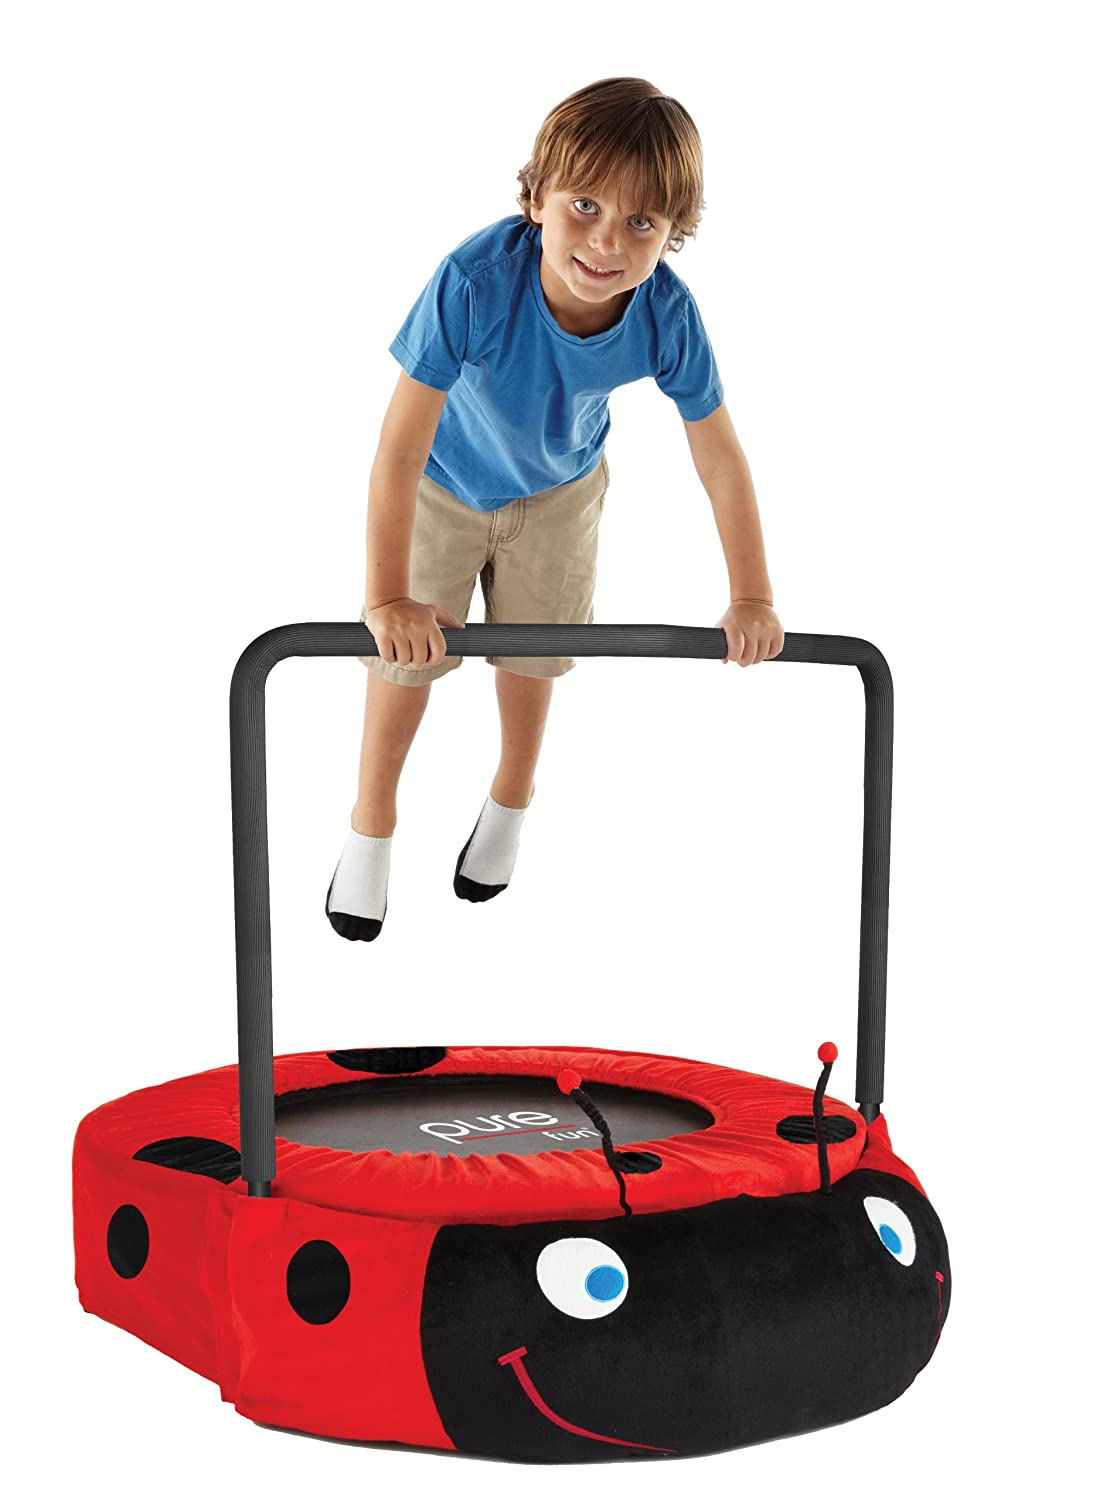 Toys For Boys 5 Years Old : Best gifts and toys for year old boys favorite top